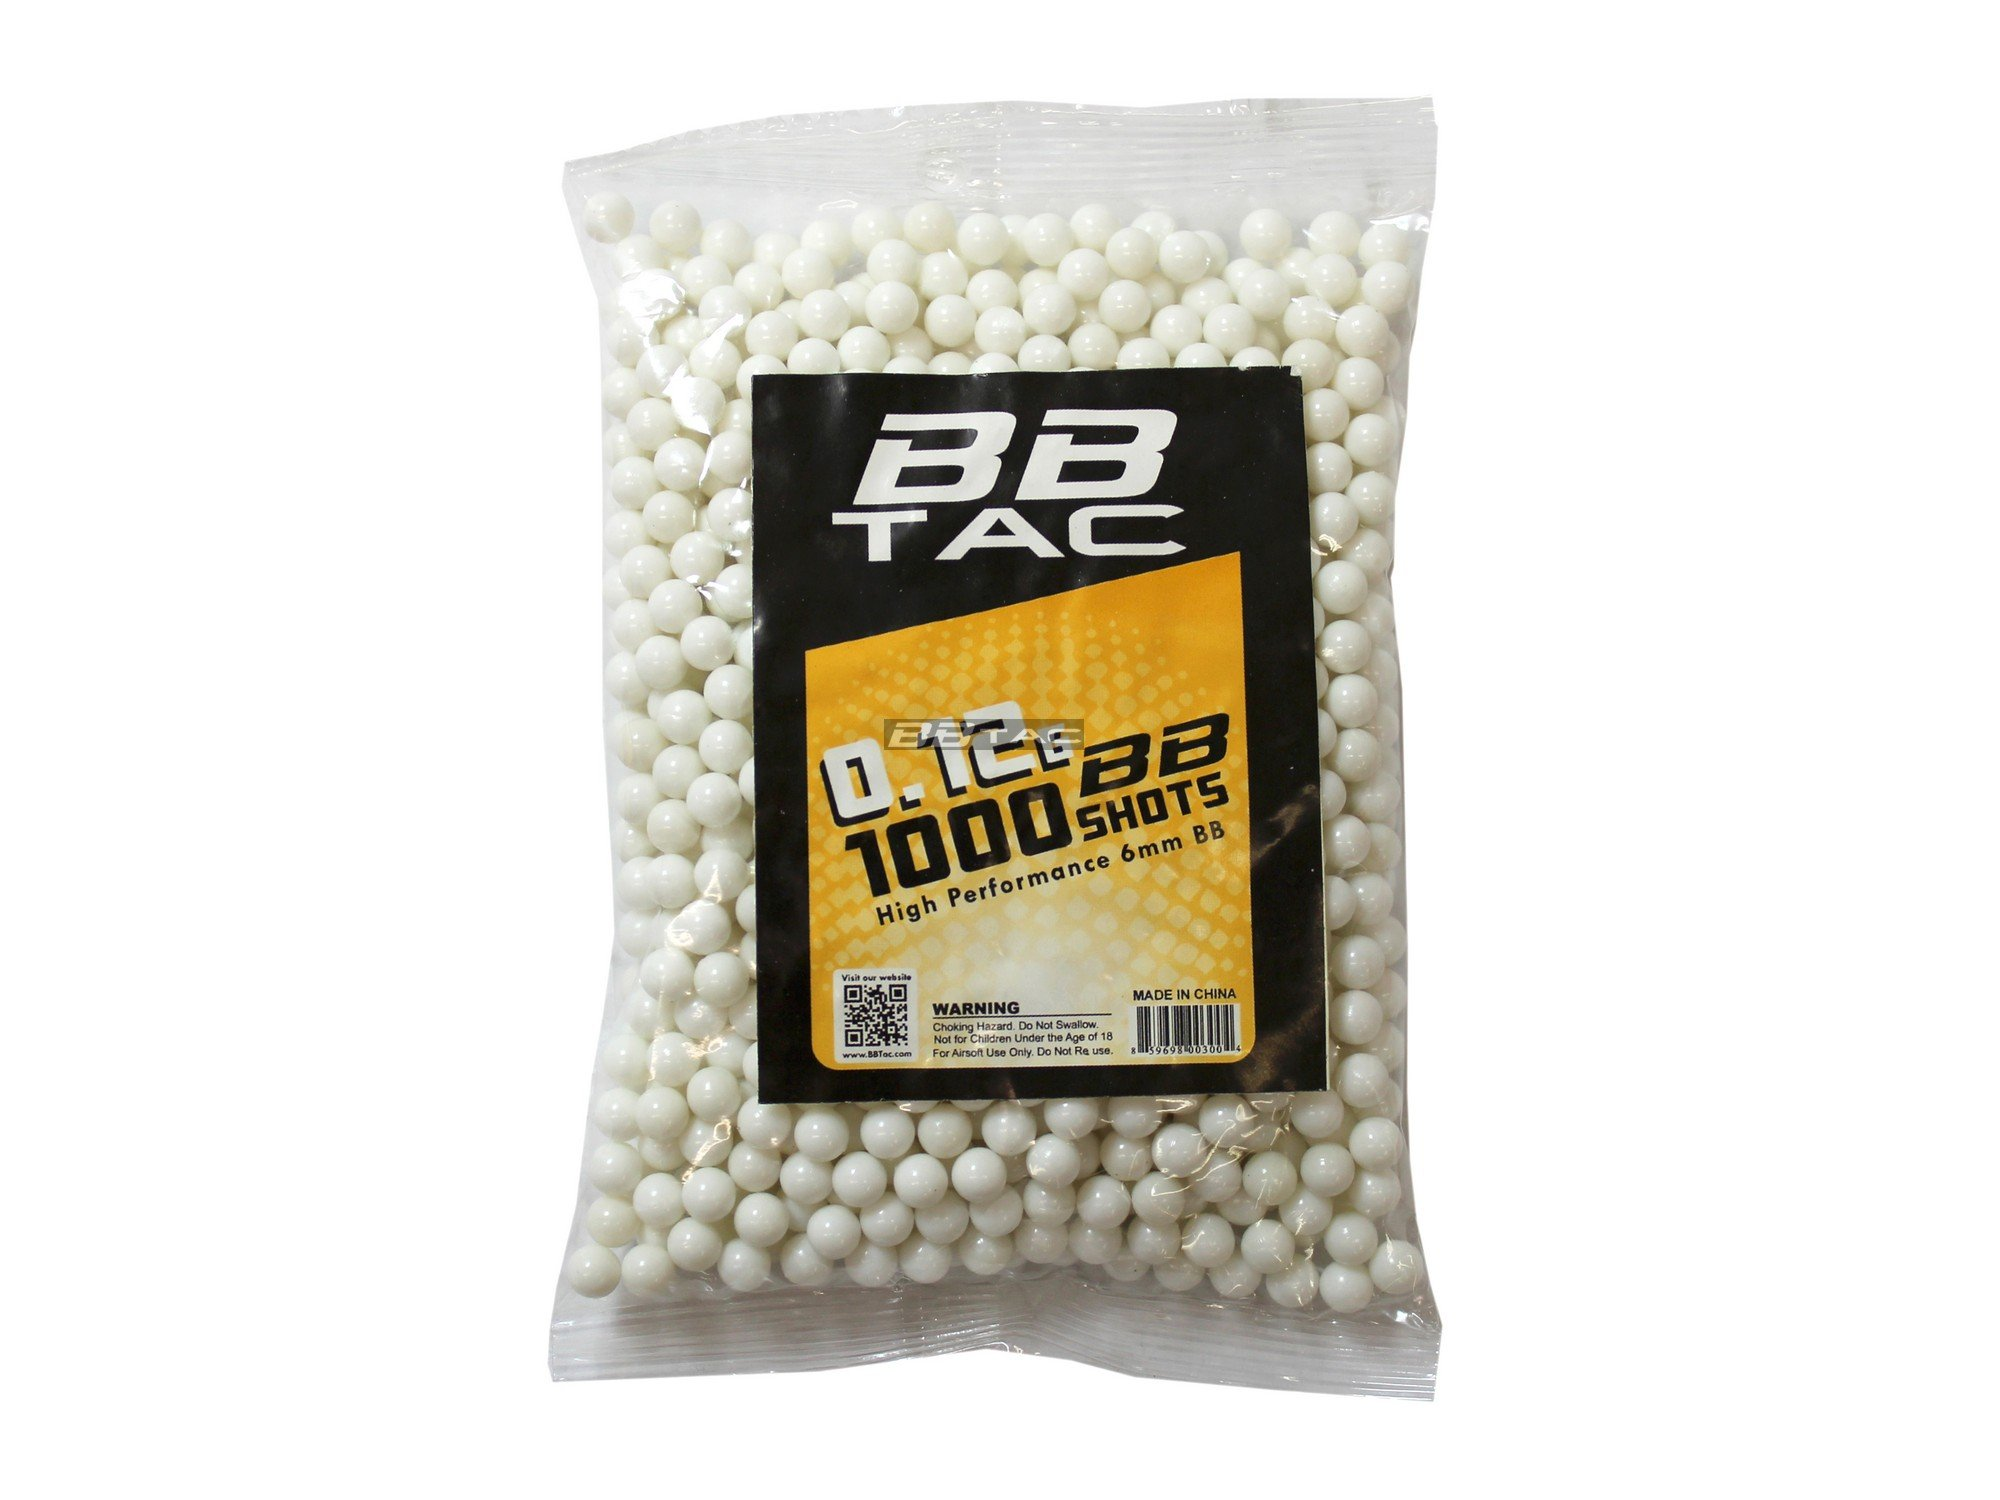 BBTac Airsoft BB 11000 Round 0.12g 6mm BBs for Airsoft Guns Ammo Pallet